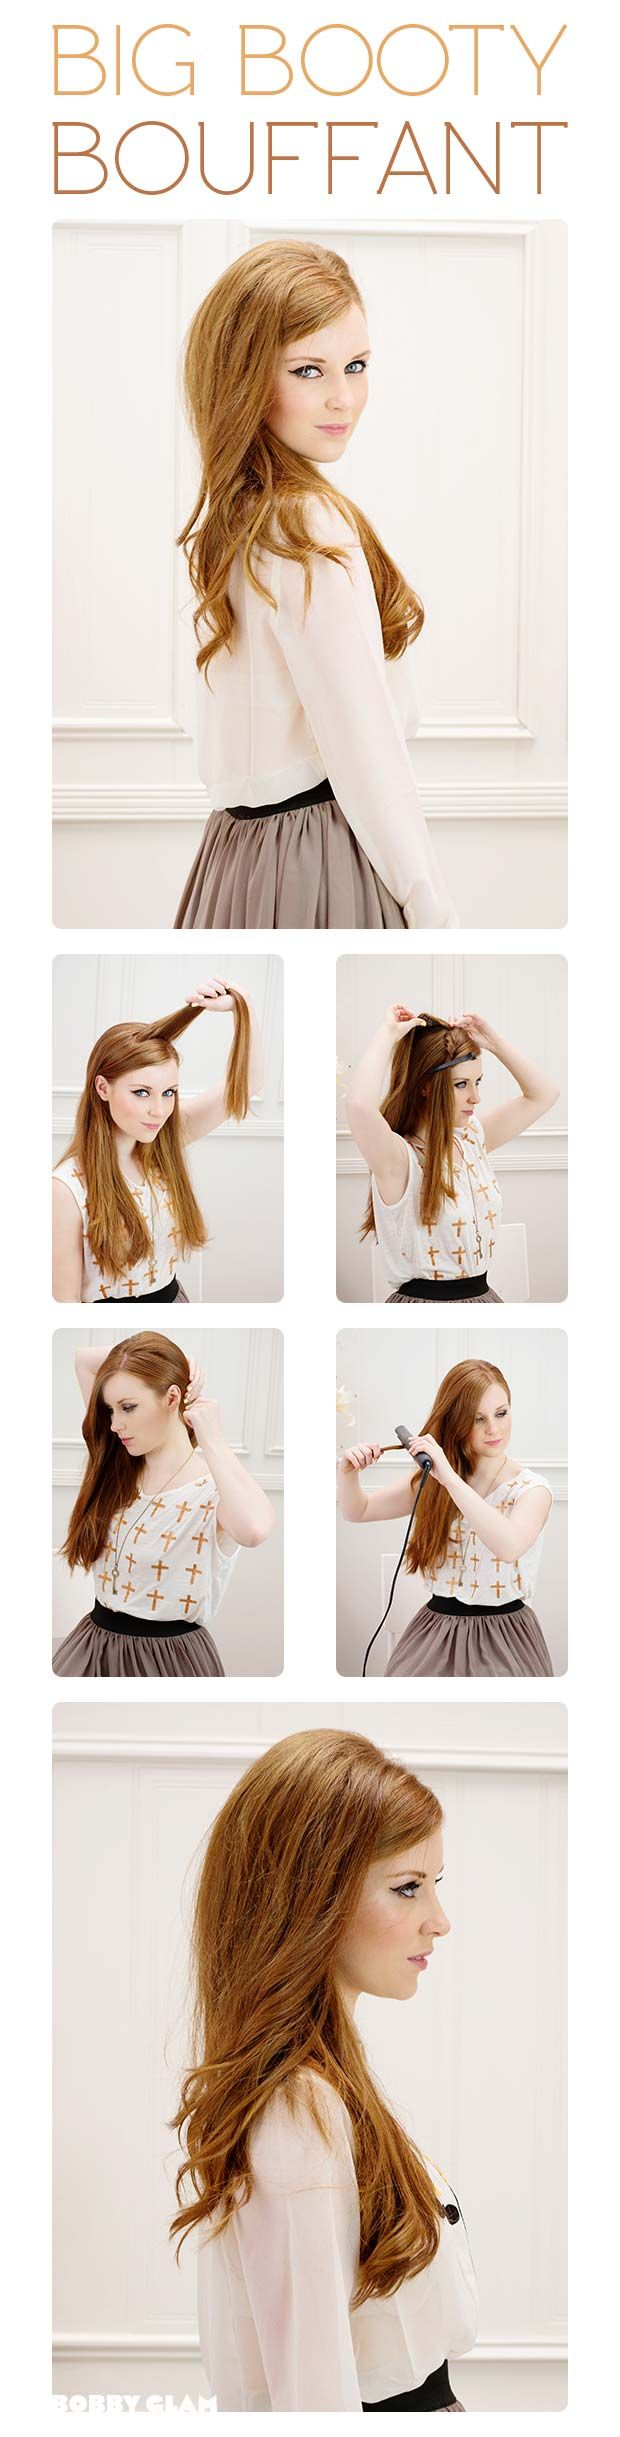 Bouffant hair: Hair Beautiful, Hair Colors, Hair Tutorials, Long Hair, Bouffant Hair, Hairstyle, Hair Style, Big Hair, Big Booty